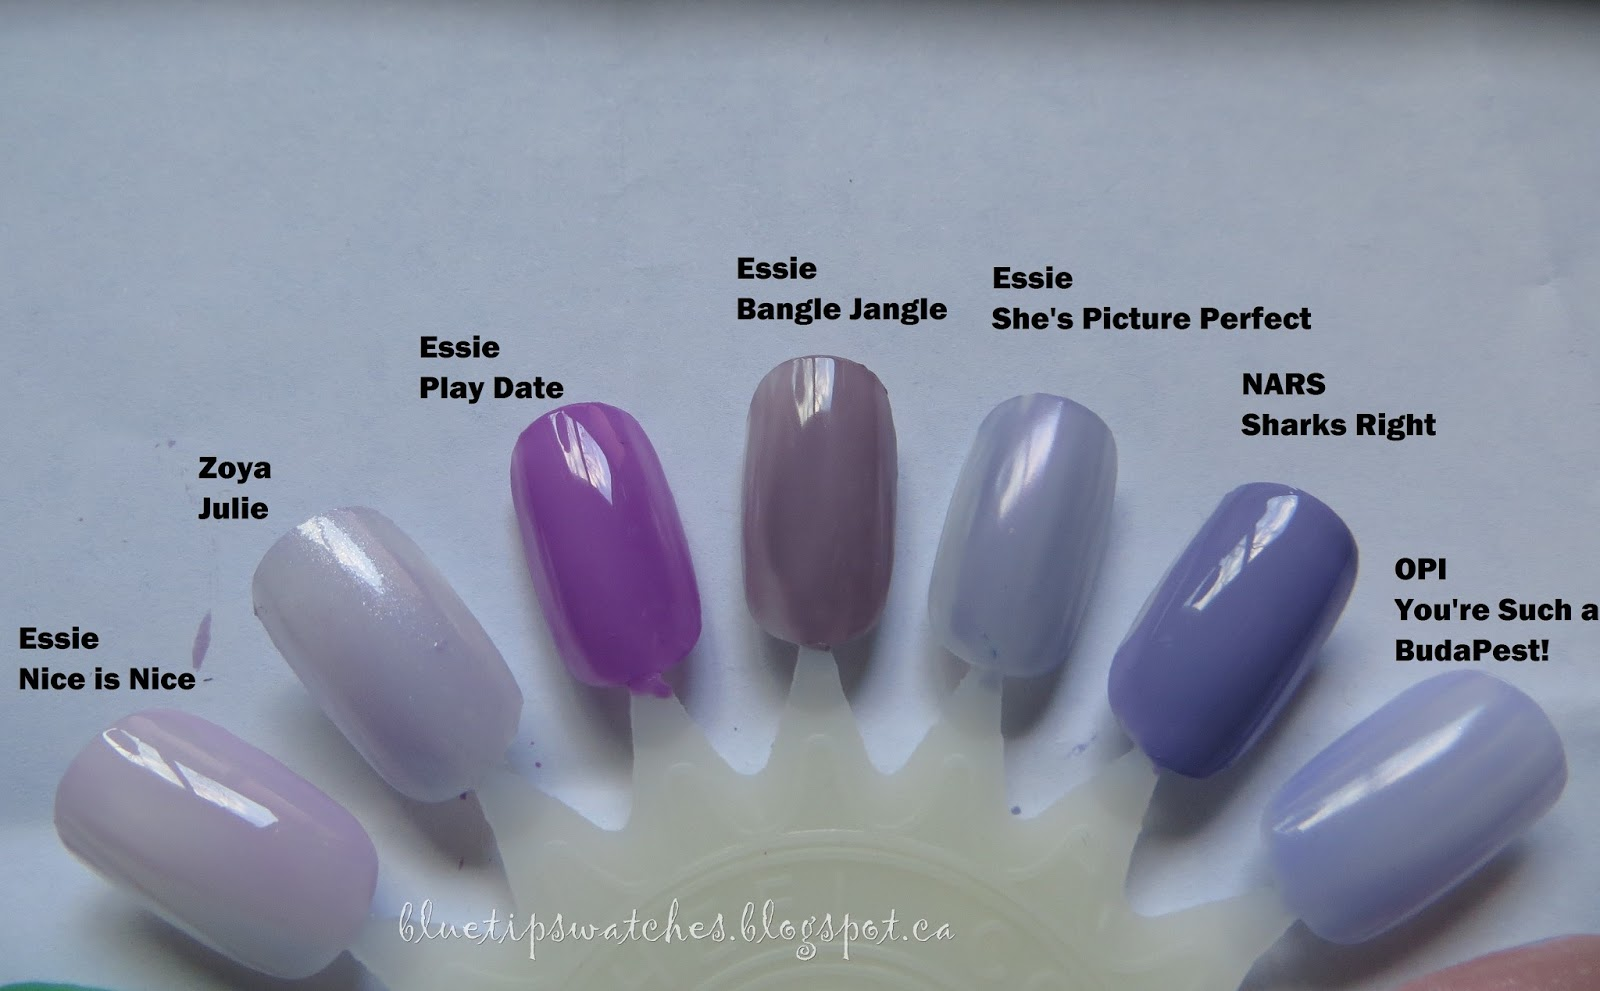 Blue Tip Swatches: Comparisons: For NARS Sharks Right with other Purples